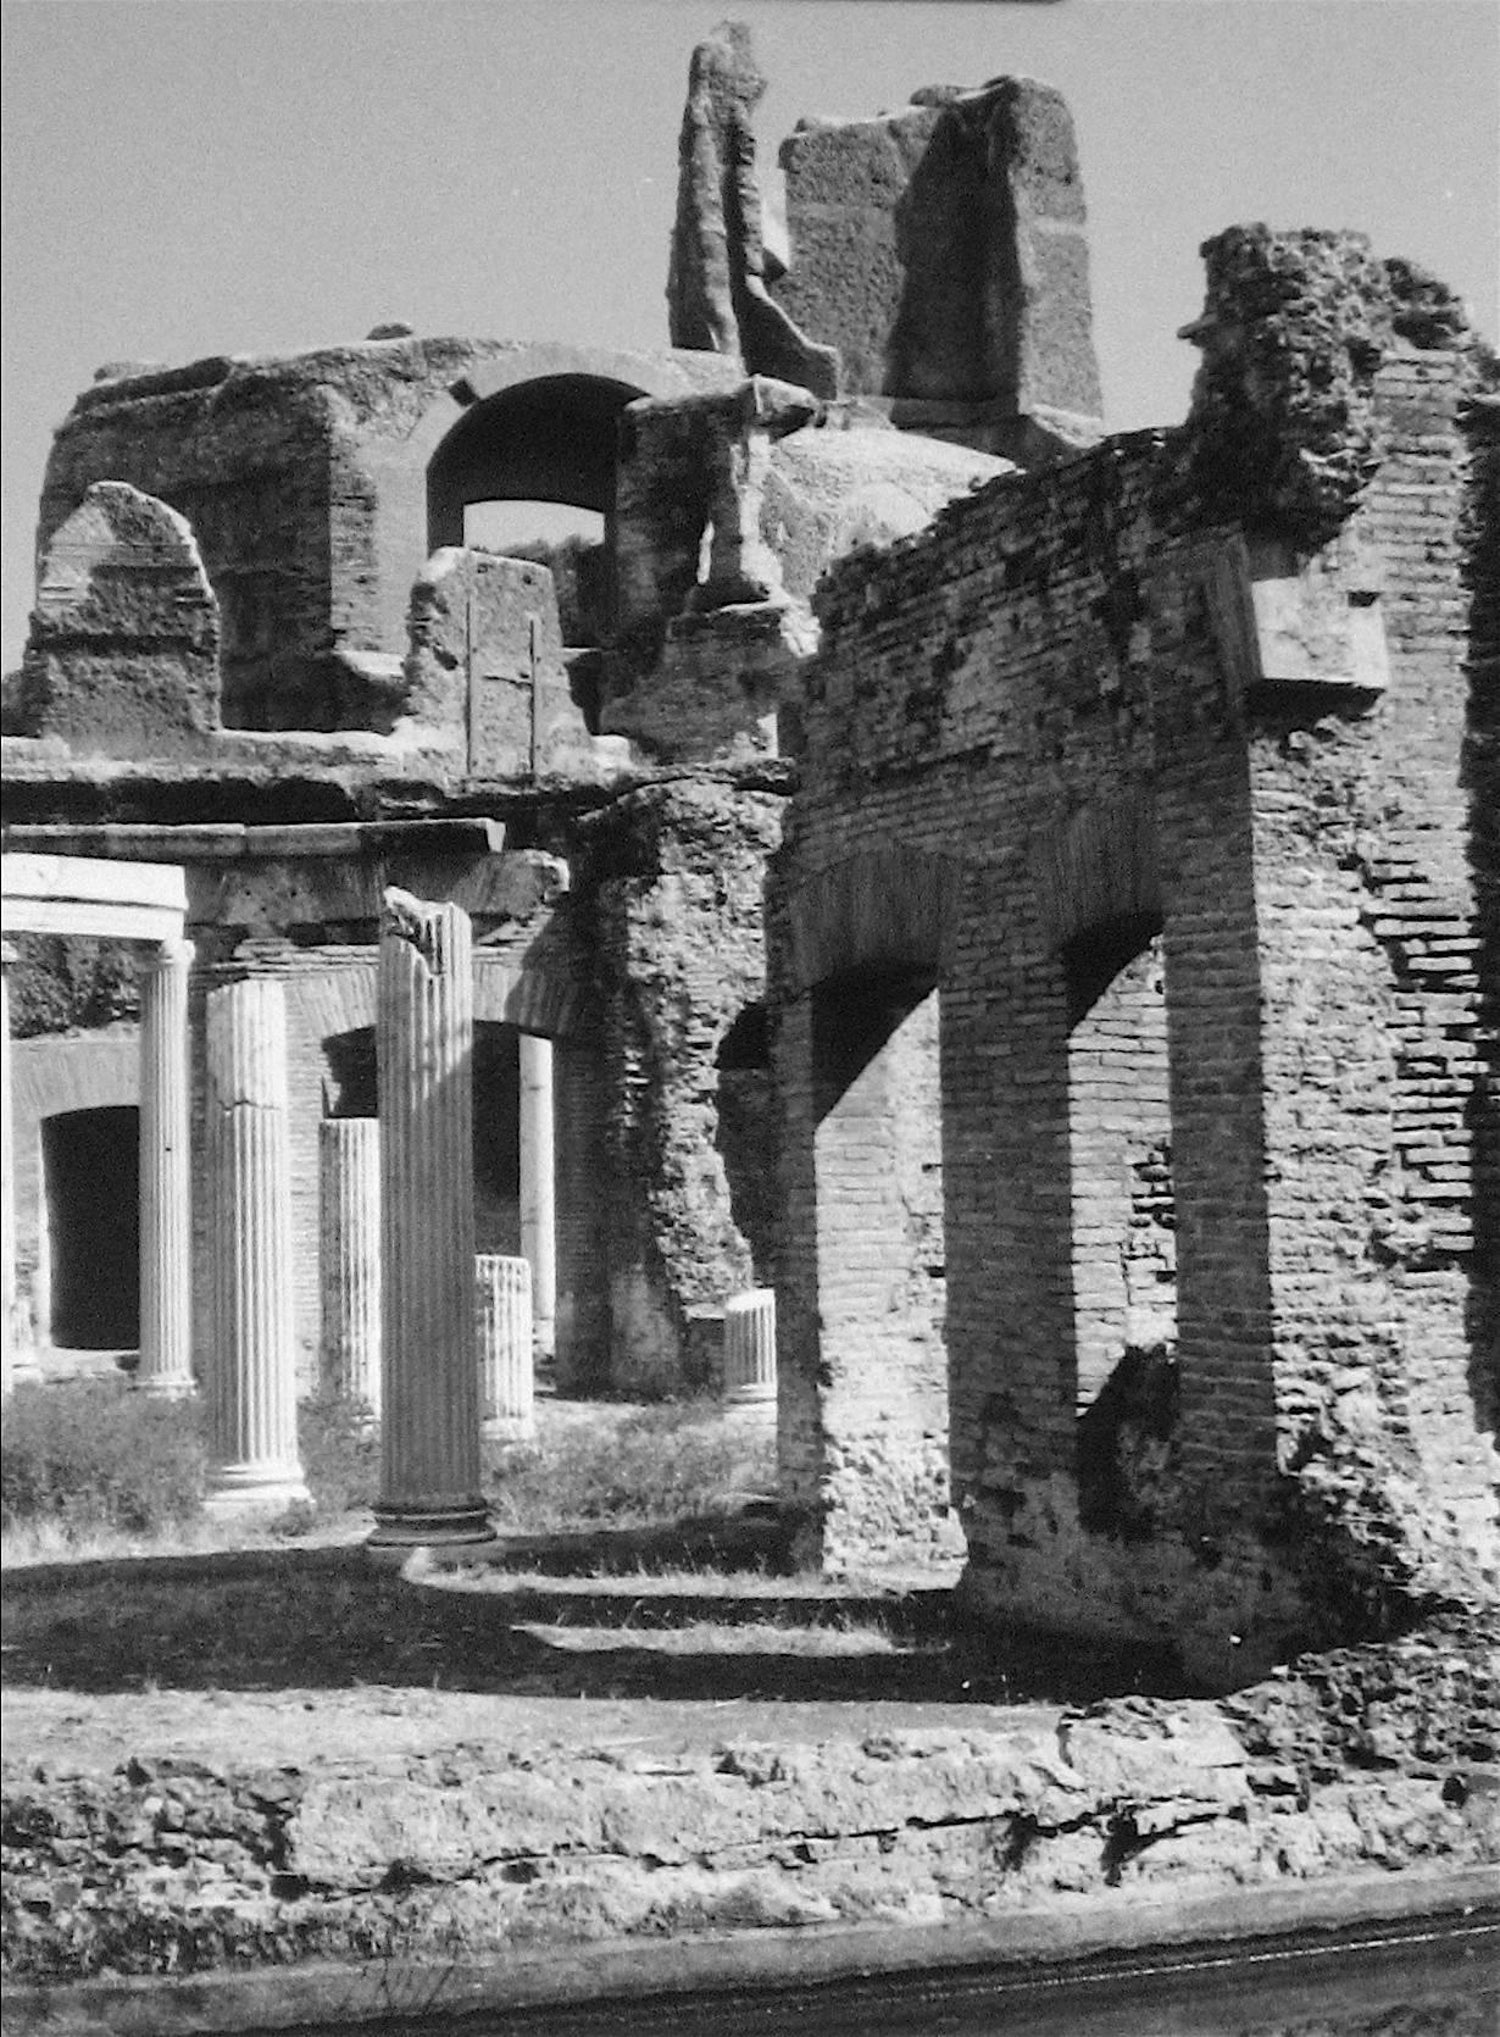 Roz joseph architectural ruins greece black and white photograph